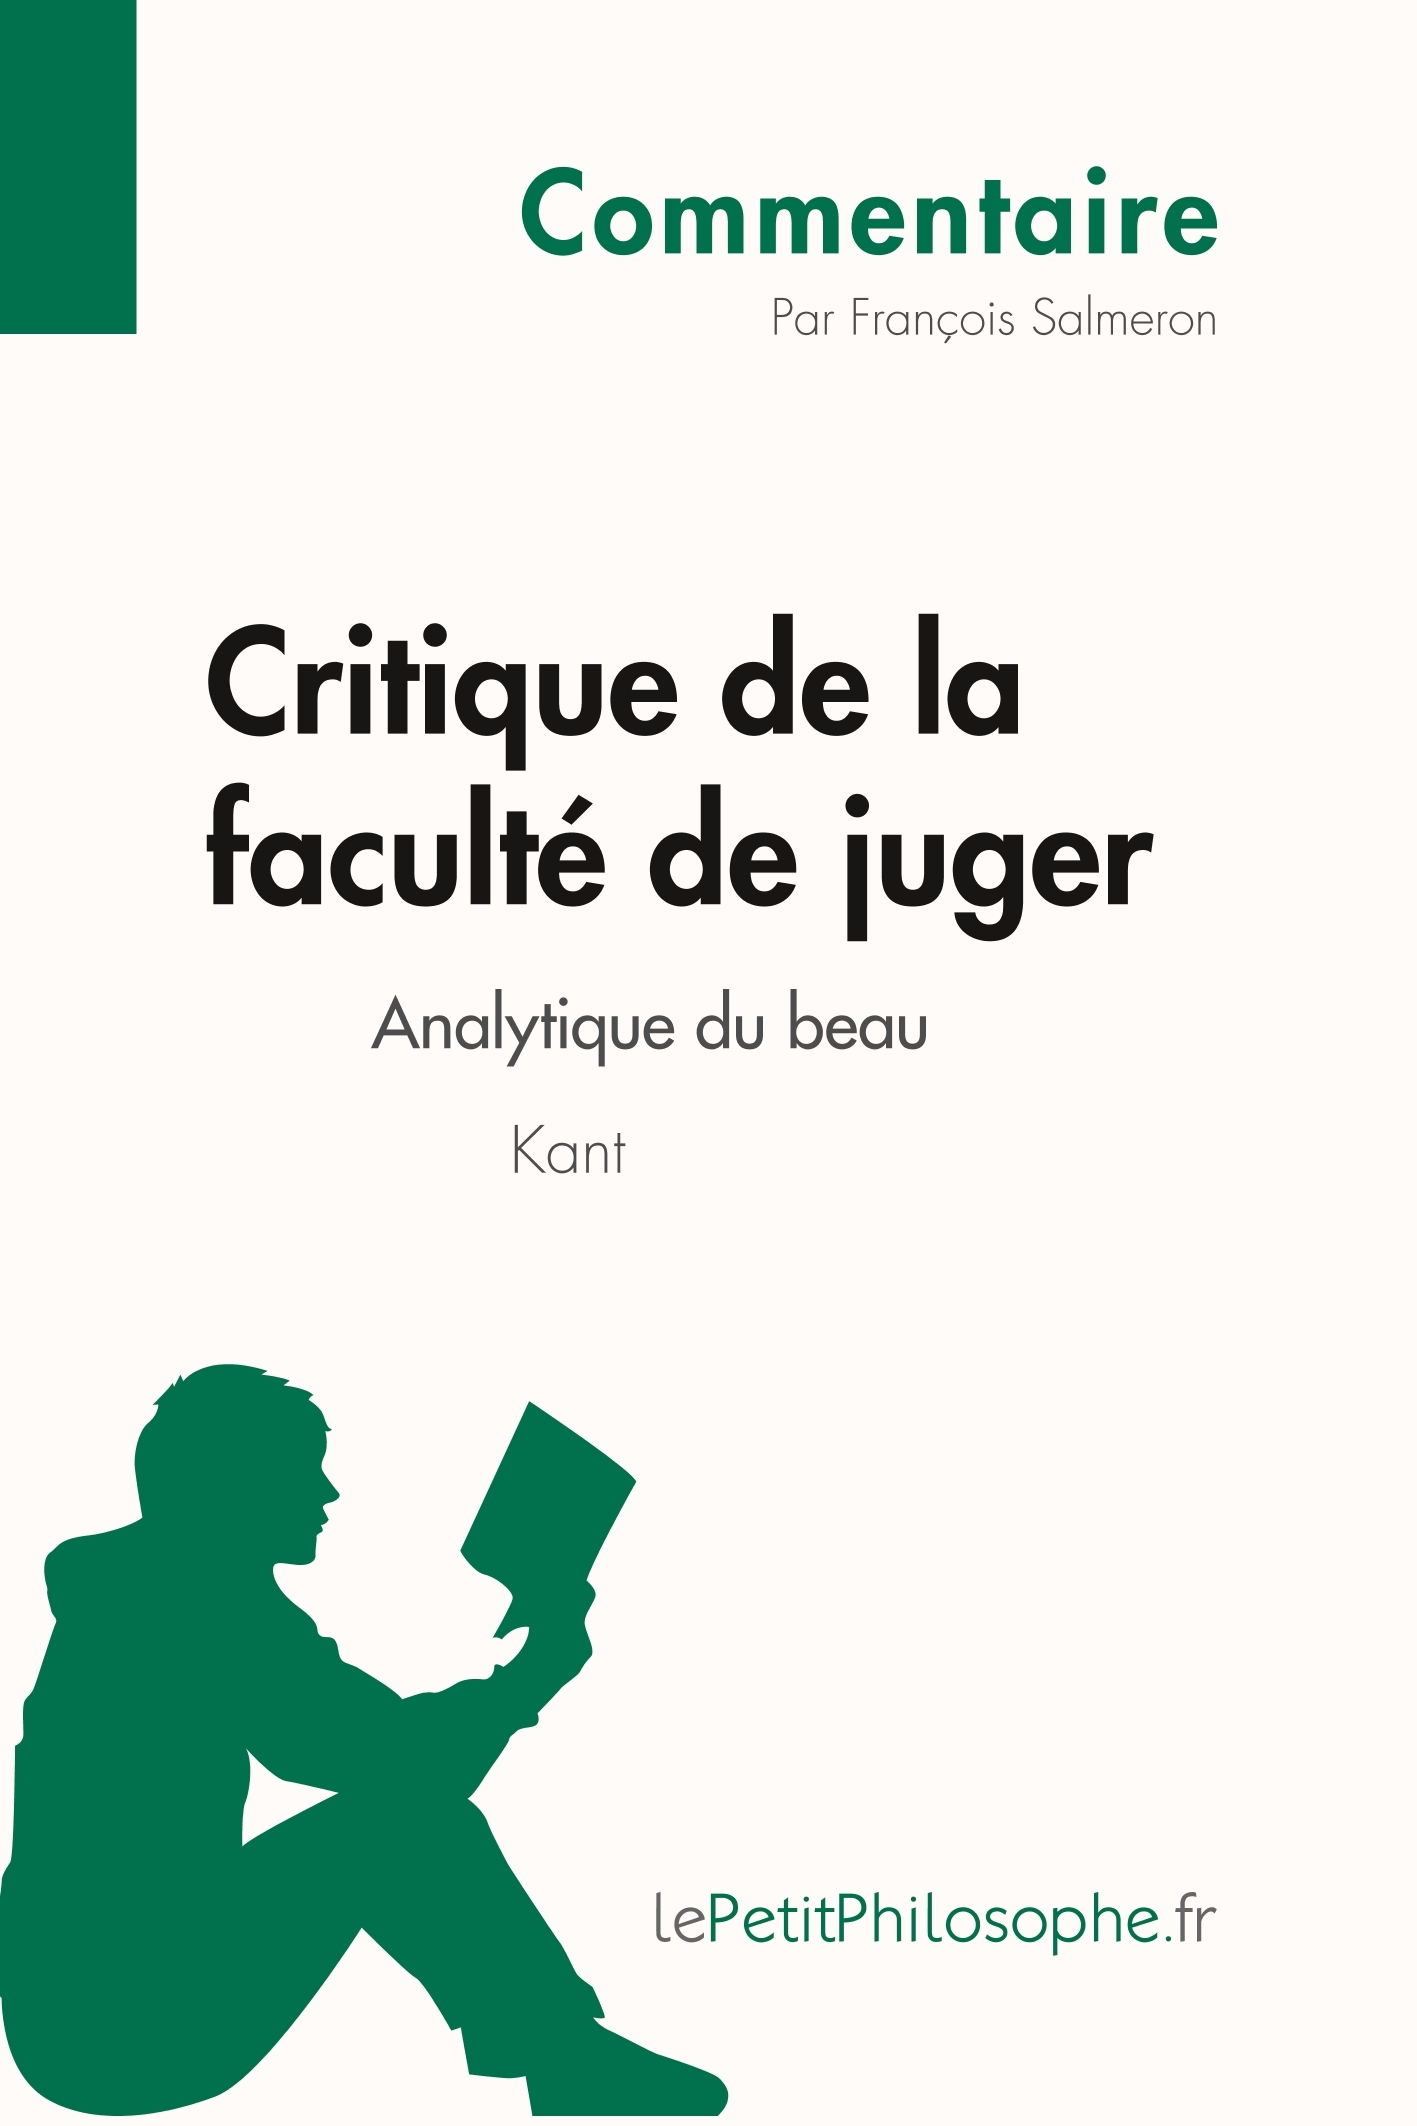 CRITIQUE DE LA FACULTE DE JUGER KANT - ANALYTIQUE DU BEAU (COMMENTAIRE)